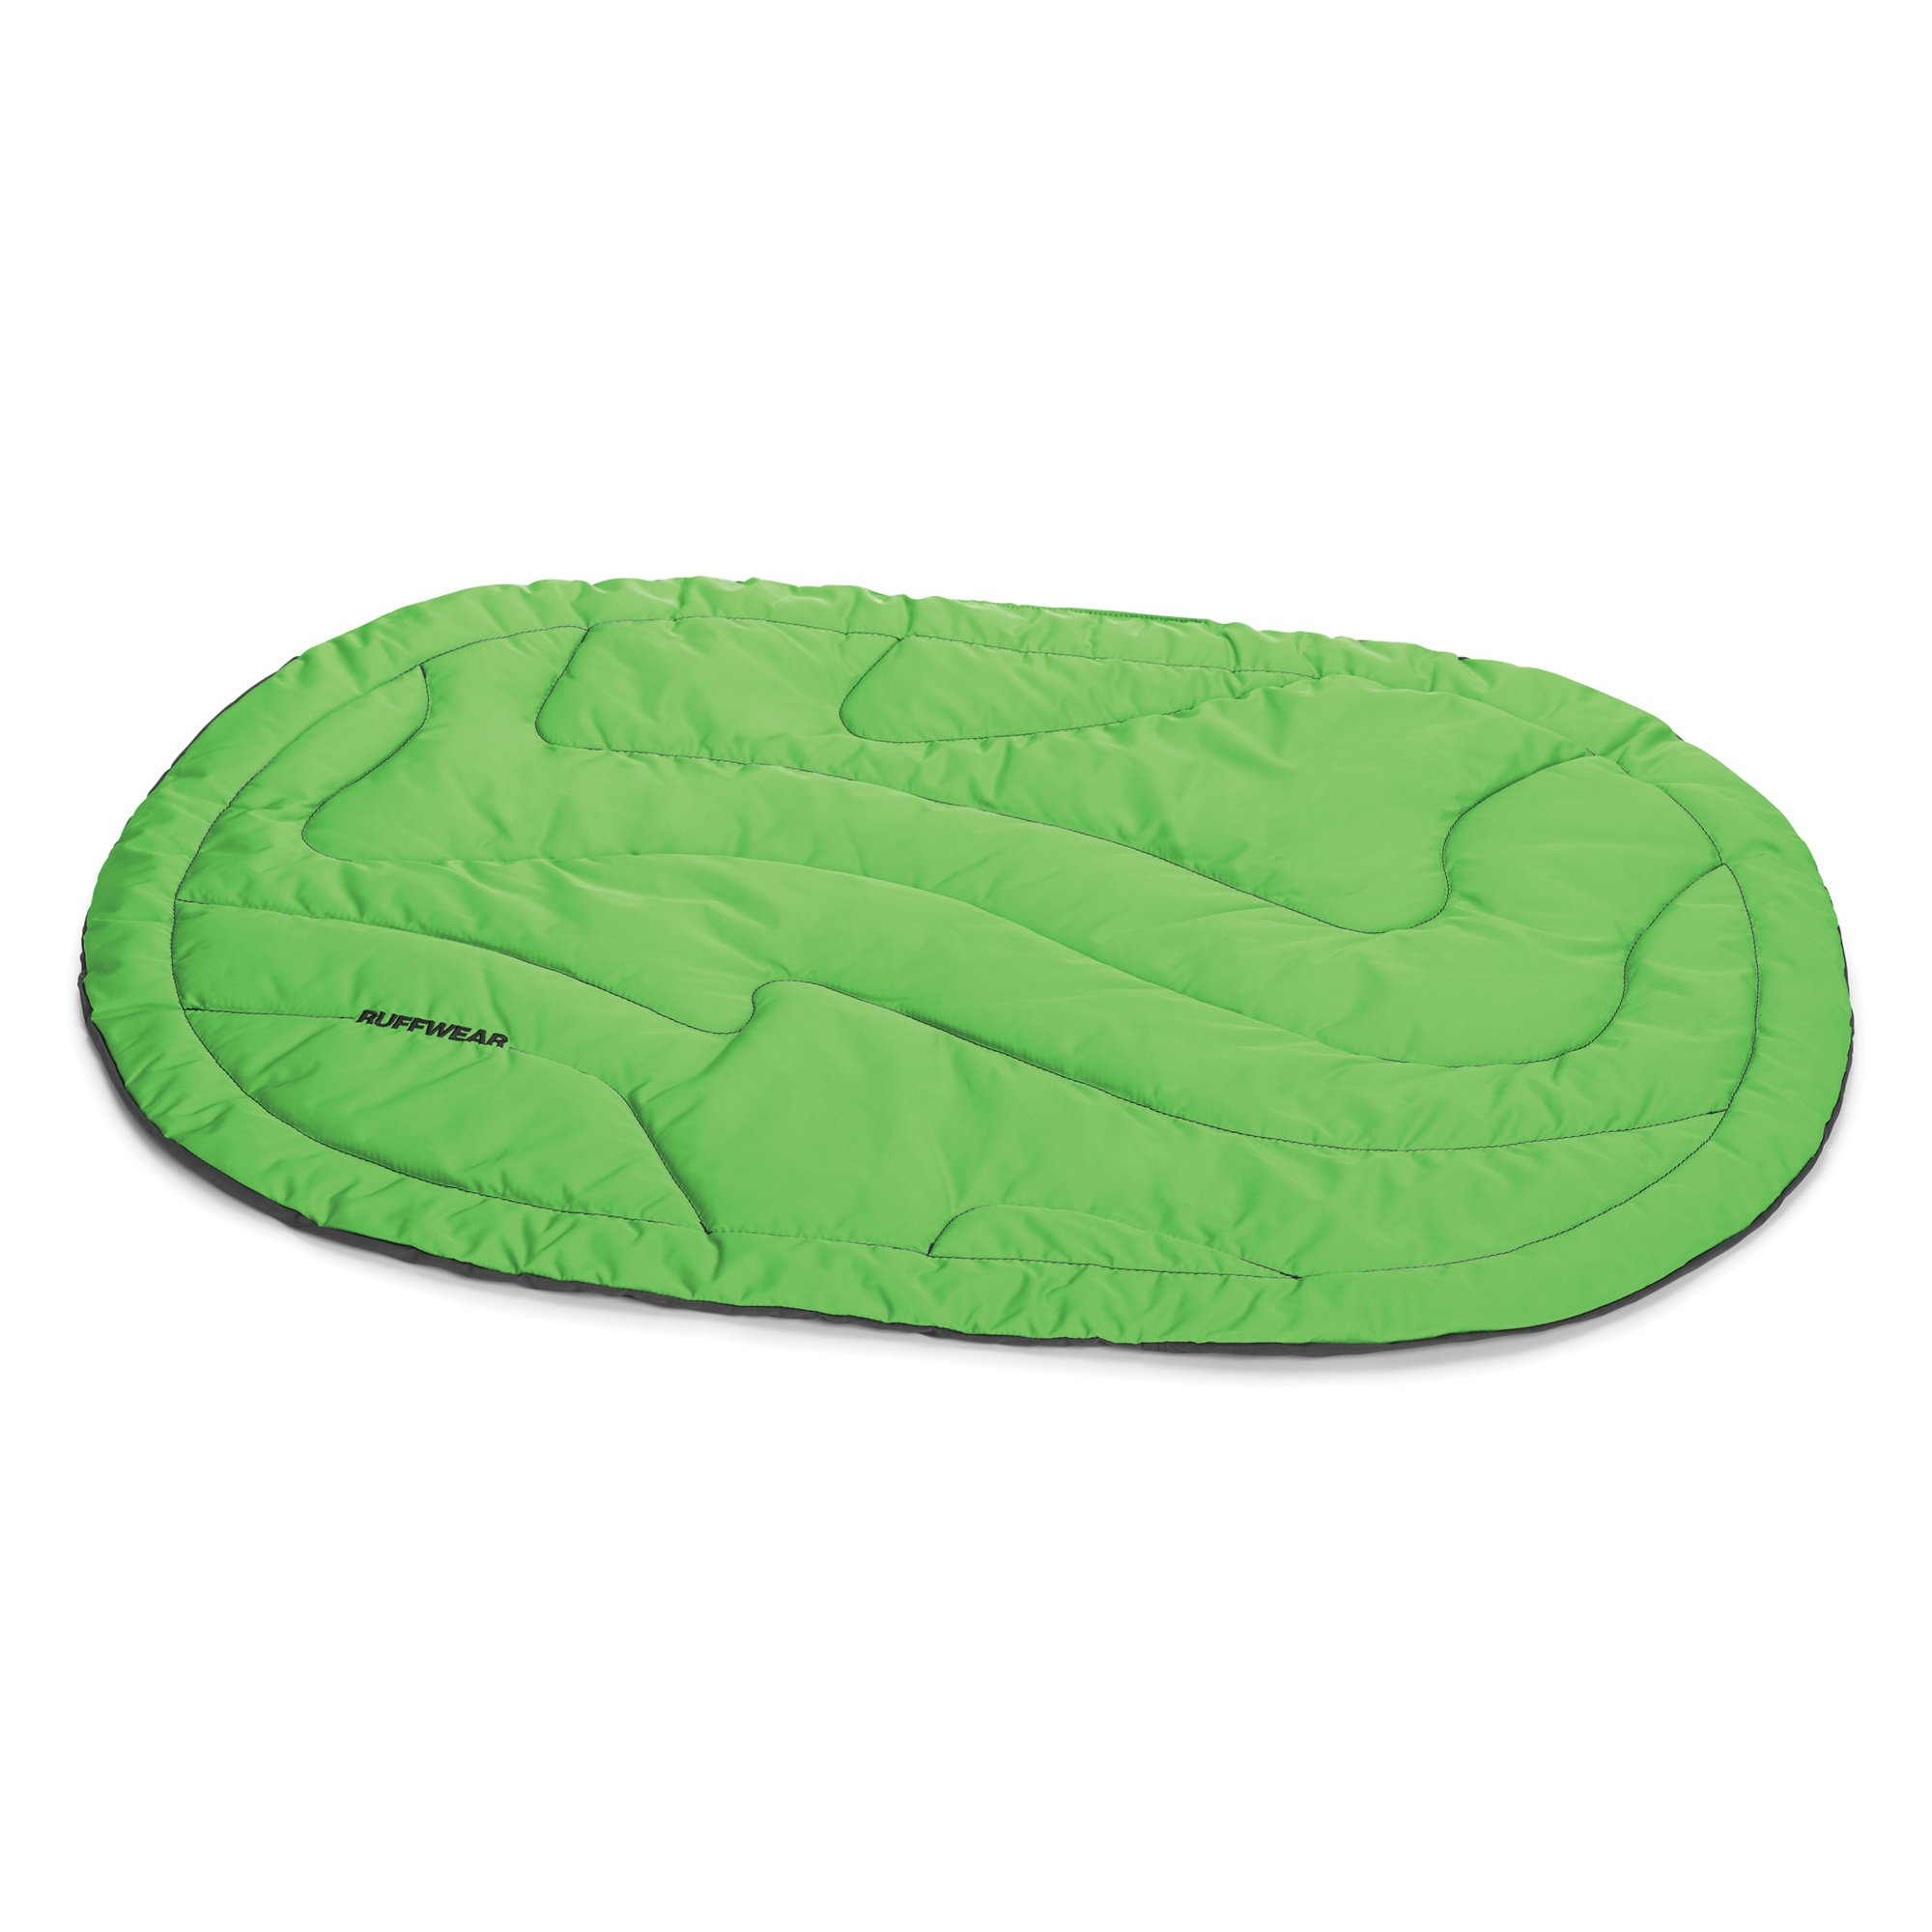 RUFFFWEAR Ruffwear - Highlands Backpacking Bed for Dogs, Meadow Green, Medium